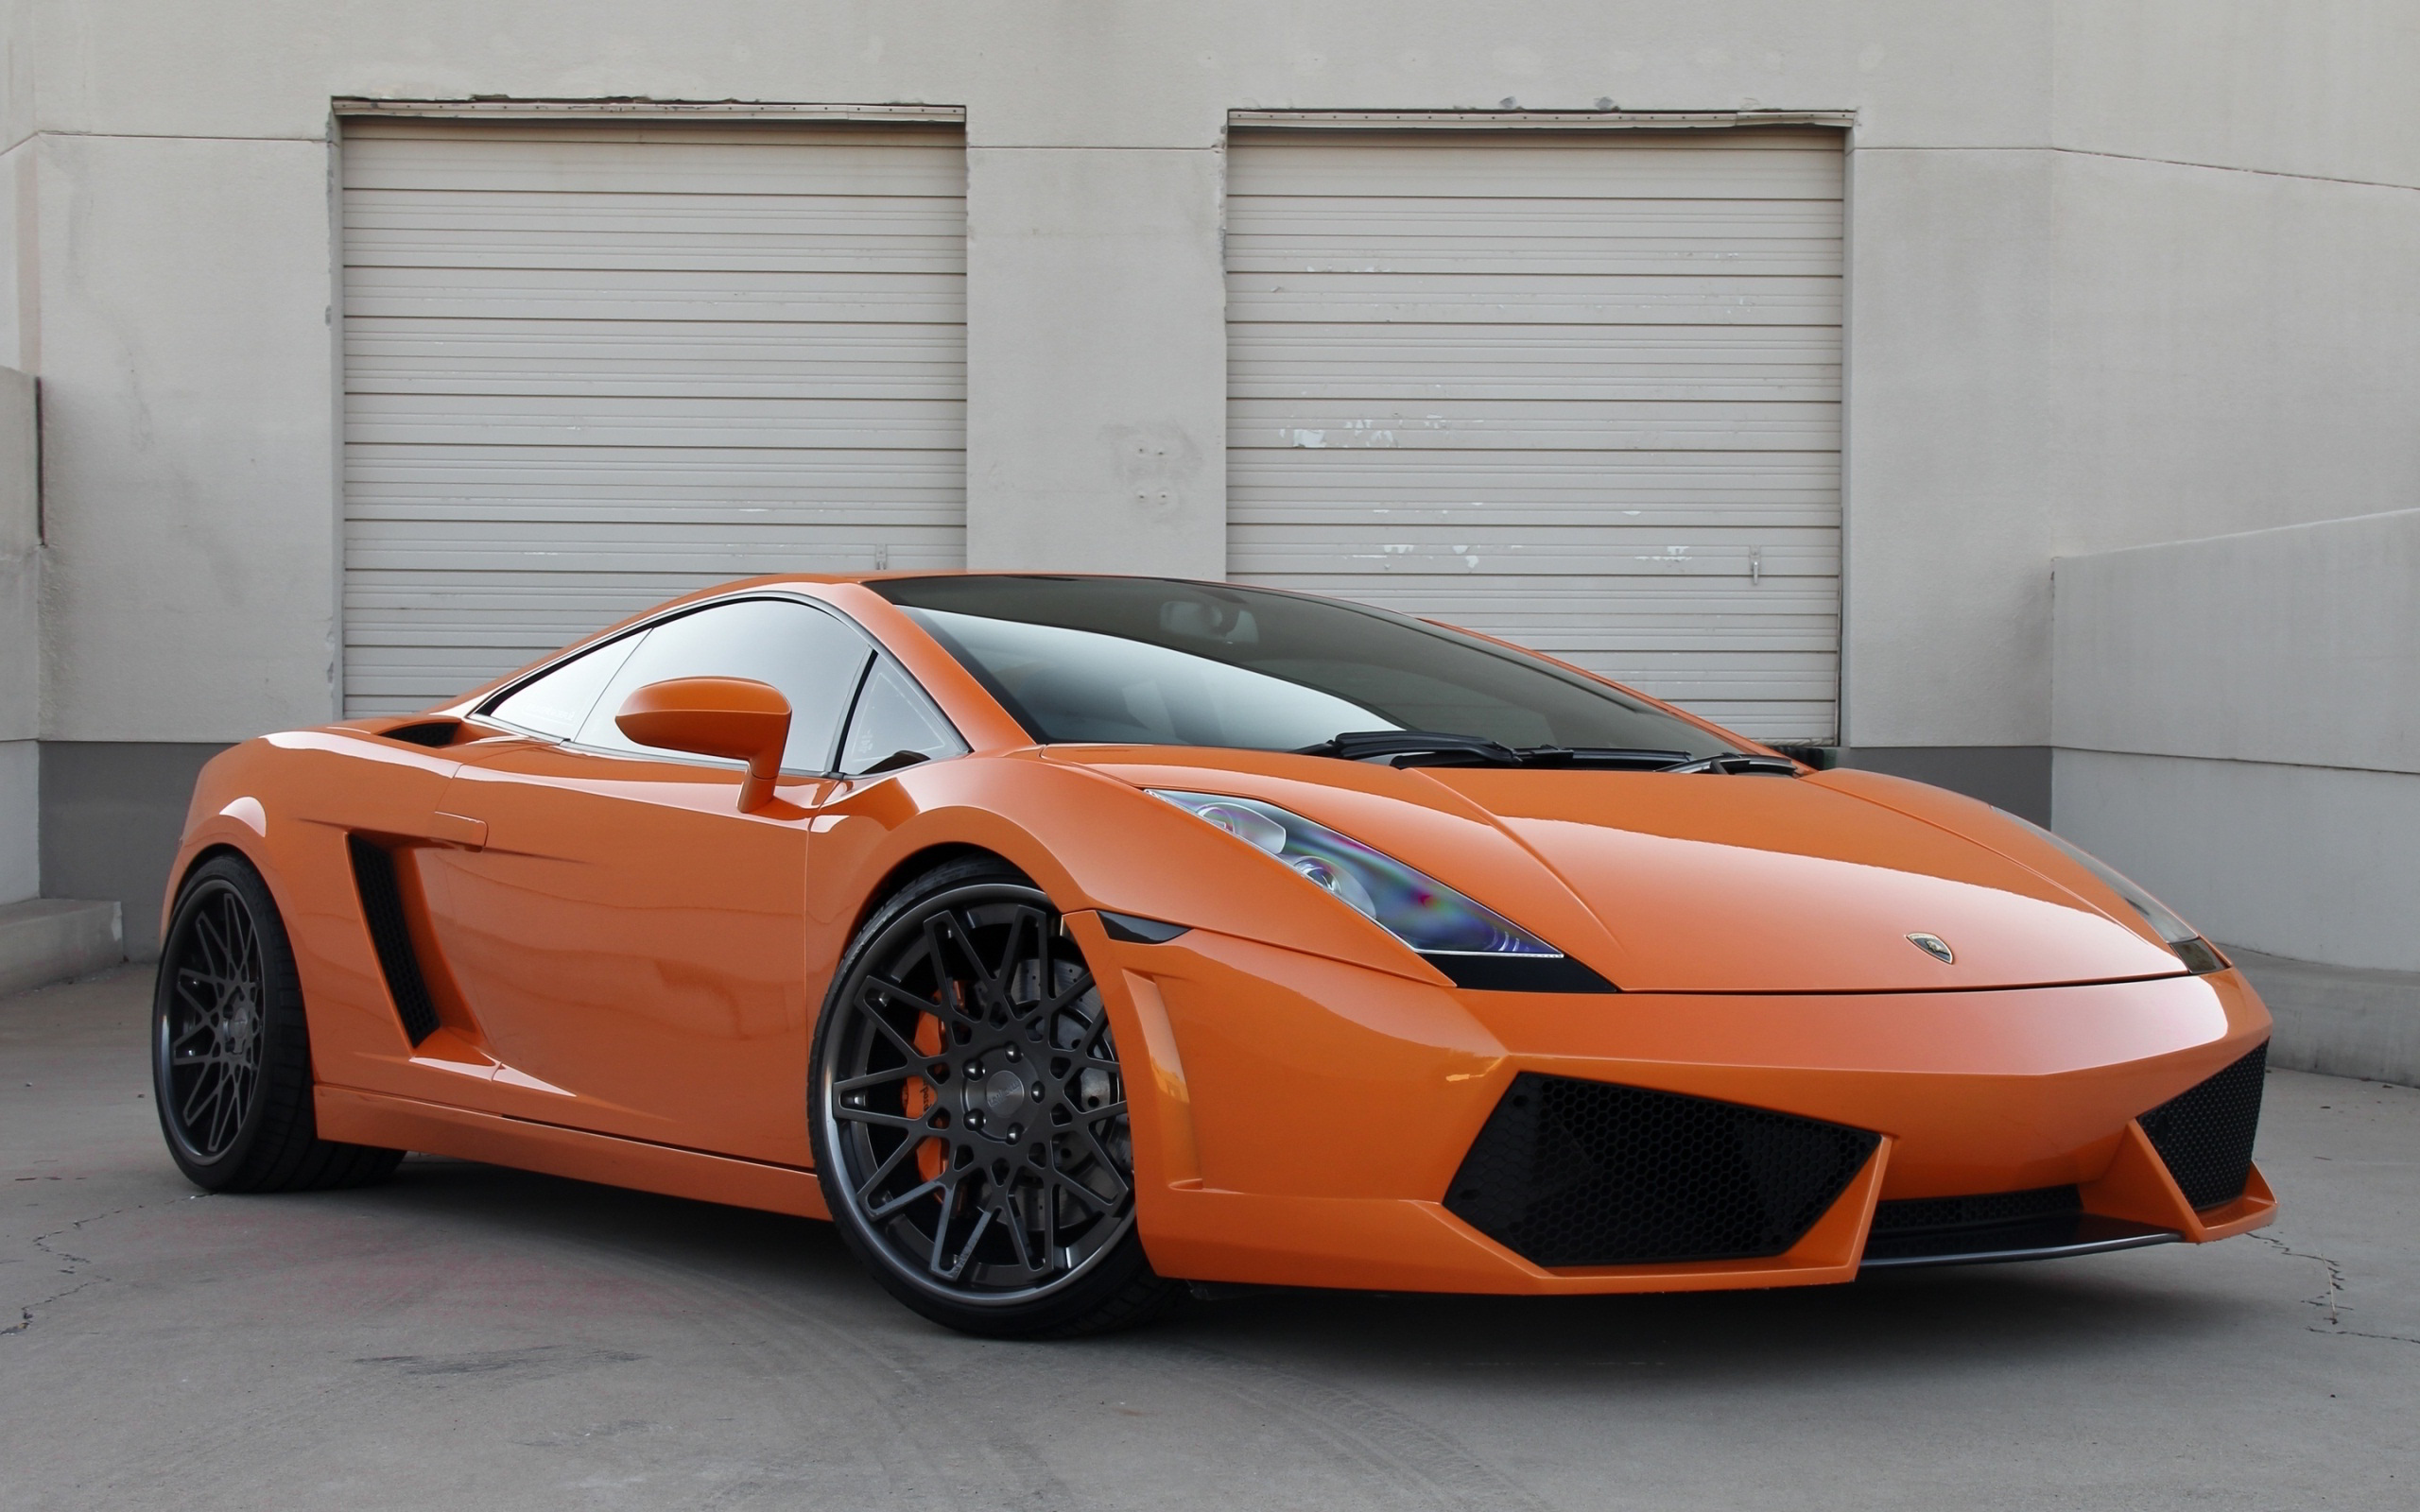 Lamborghini Gallardo Orange